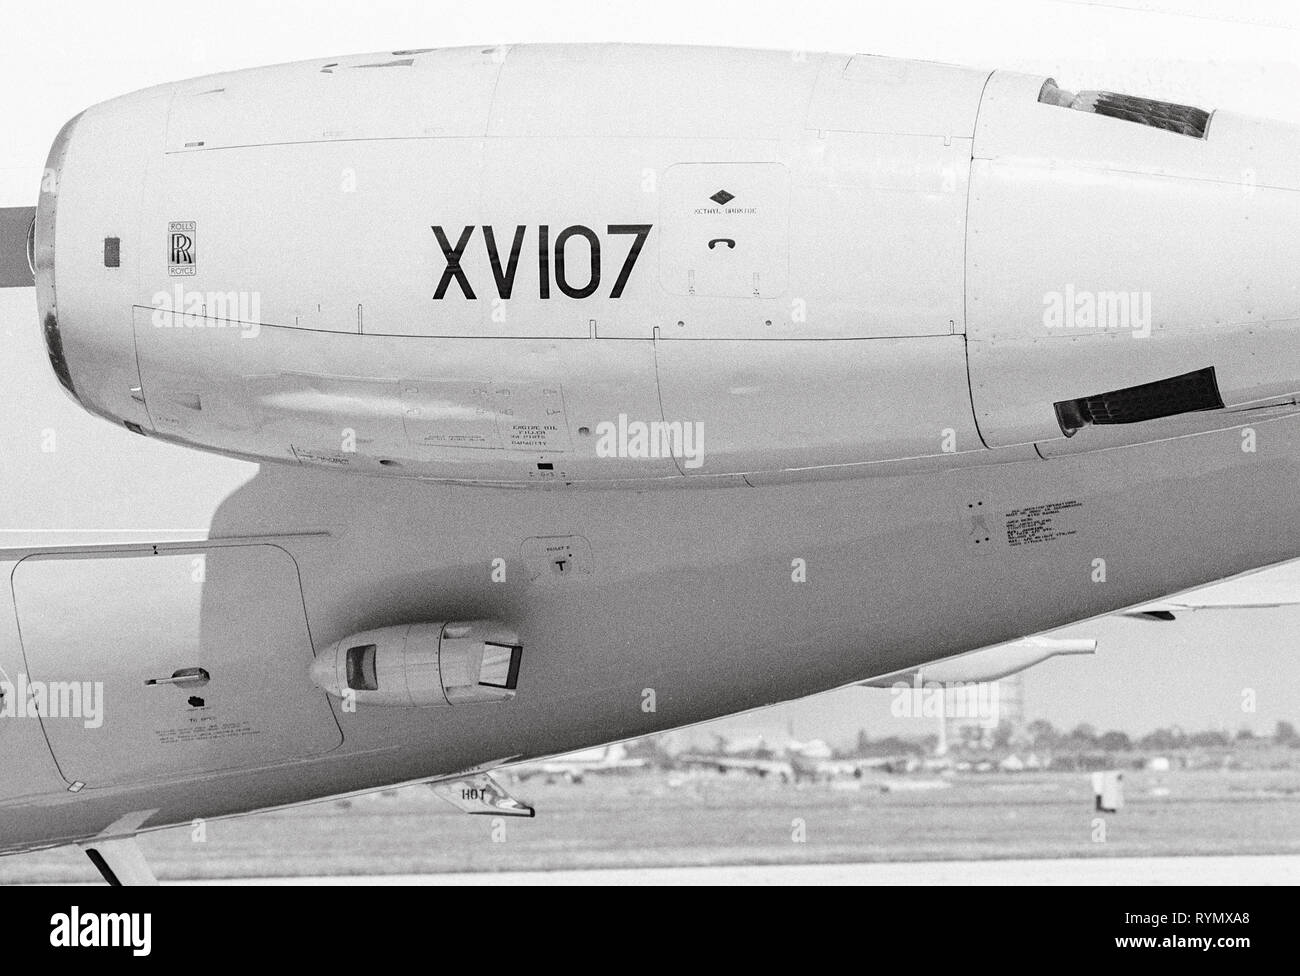 An RAF VC 10 aircraft being operated to transport the then Prime minister Margaret Thatcher on official visits. The aircraft is fitted an anti heat seeking missile pod beneath the engine. Stock Photo